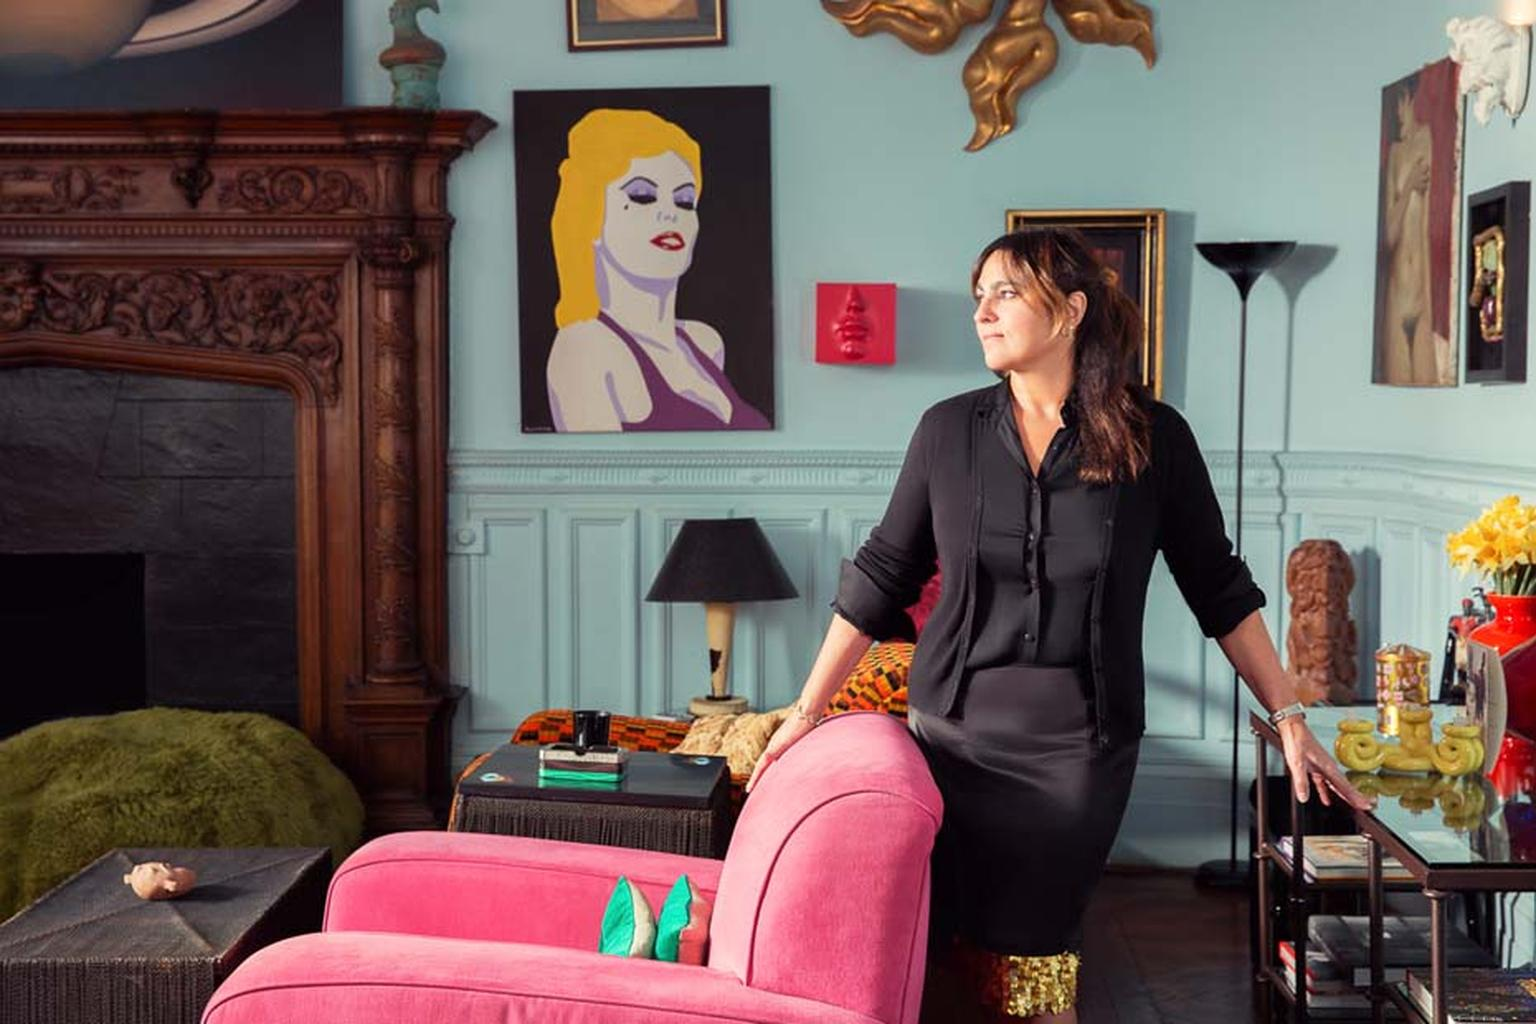 British designer Solange Azagury-Partridge, pictured at her impressive Mayfair townhouse. One of Britain's most exciting and original jewellers, she is curating an online auction of art, jewellery and design for Paddle8 from 5-19 May 2015.